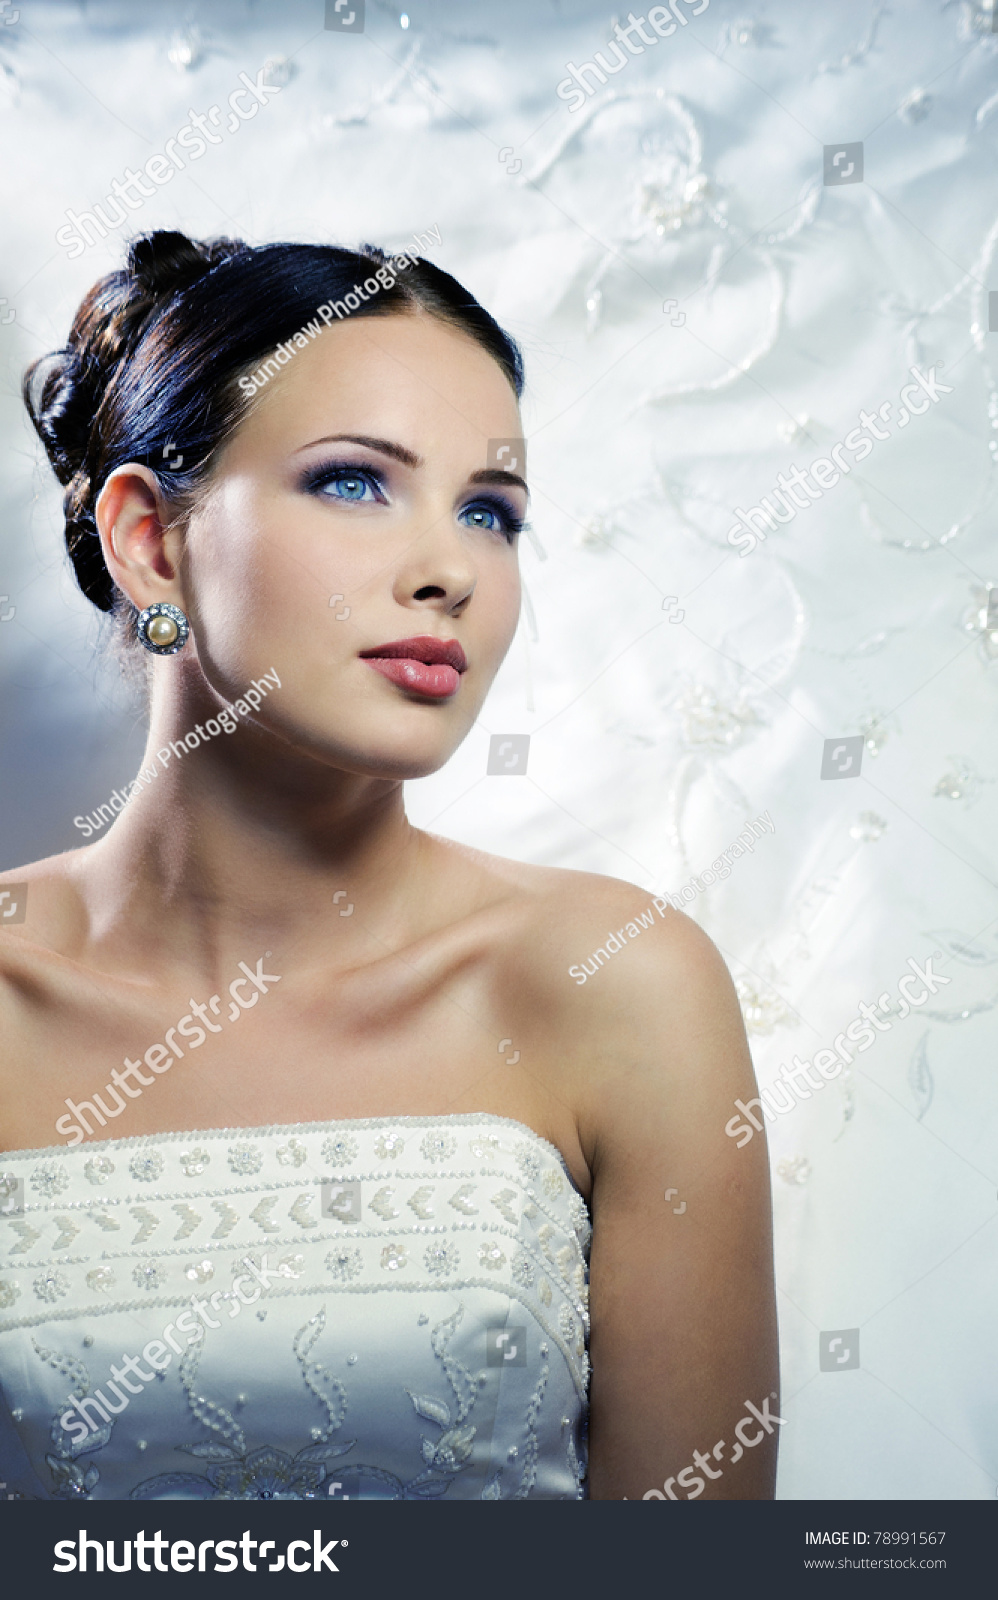 Affiliates Shutterstock Beautiful Bride Photos 79